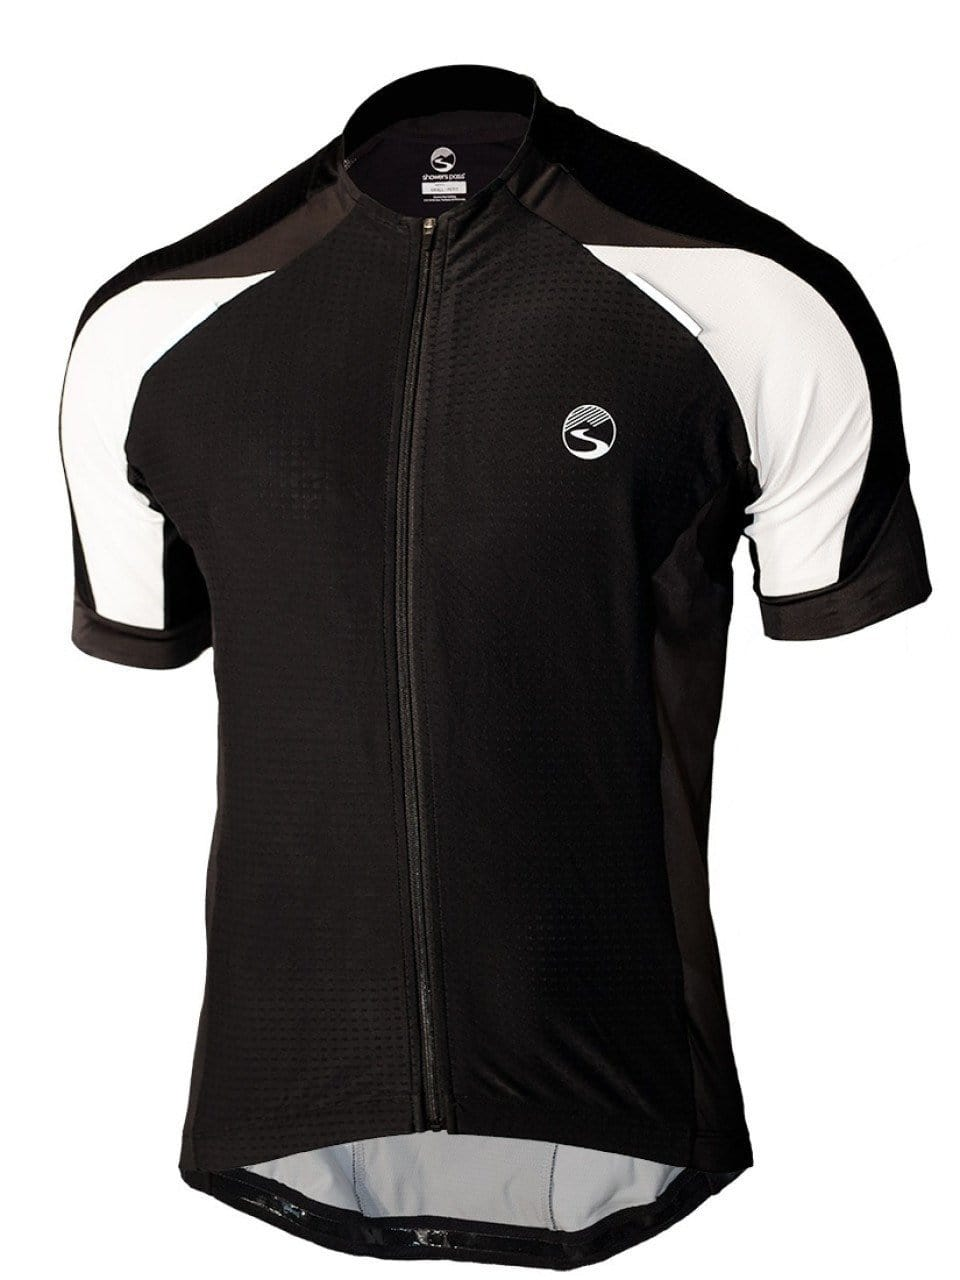 Men's Short Sleeve Cyclone Jersey